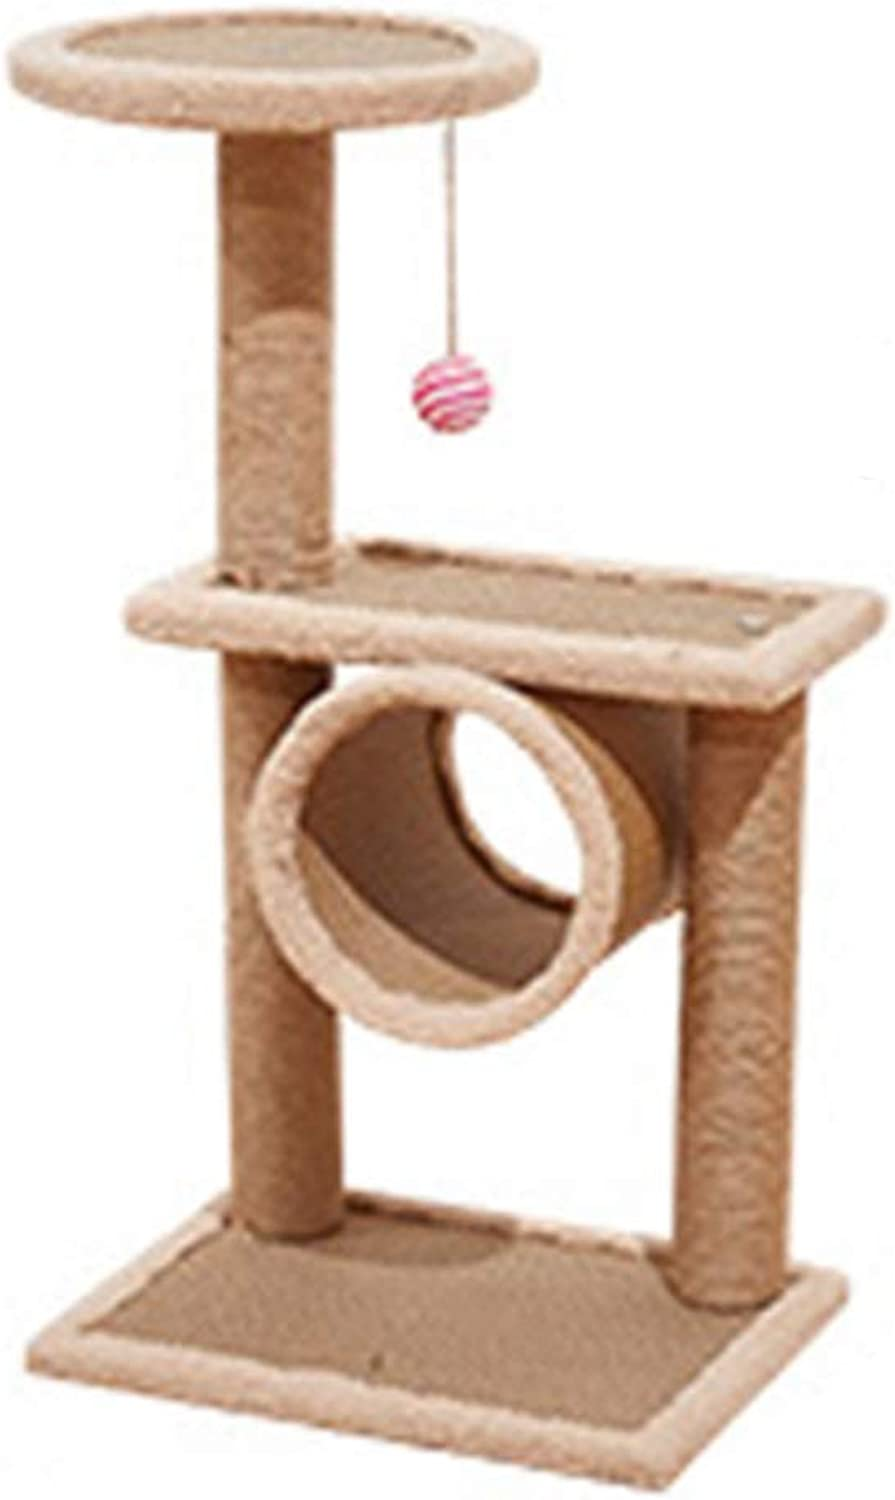 LXHONG Cat Climbing Frame Tree And Tower Solid Wood Bracket Structure Grab Board Toy Jump Platform, 3 Sizes (color   Yellow, Size   40x35x75cm)